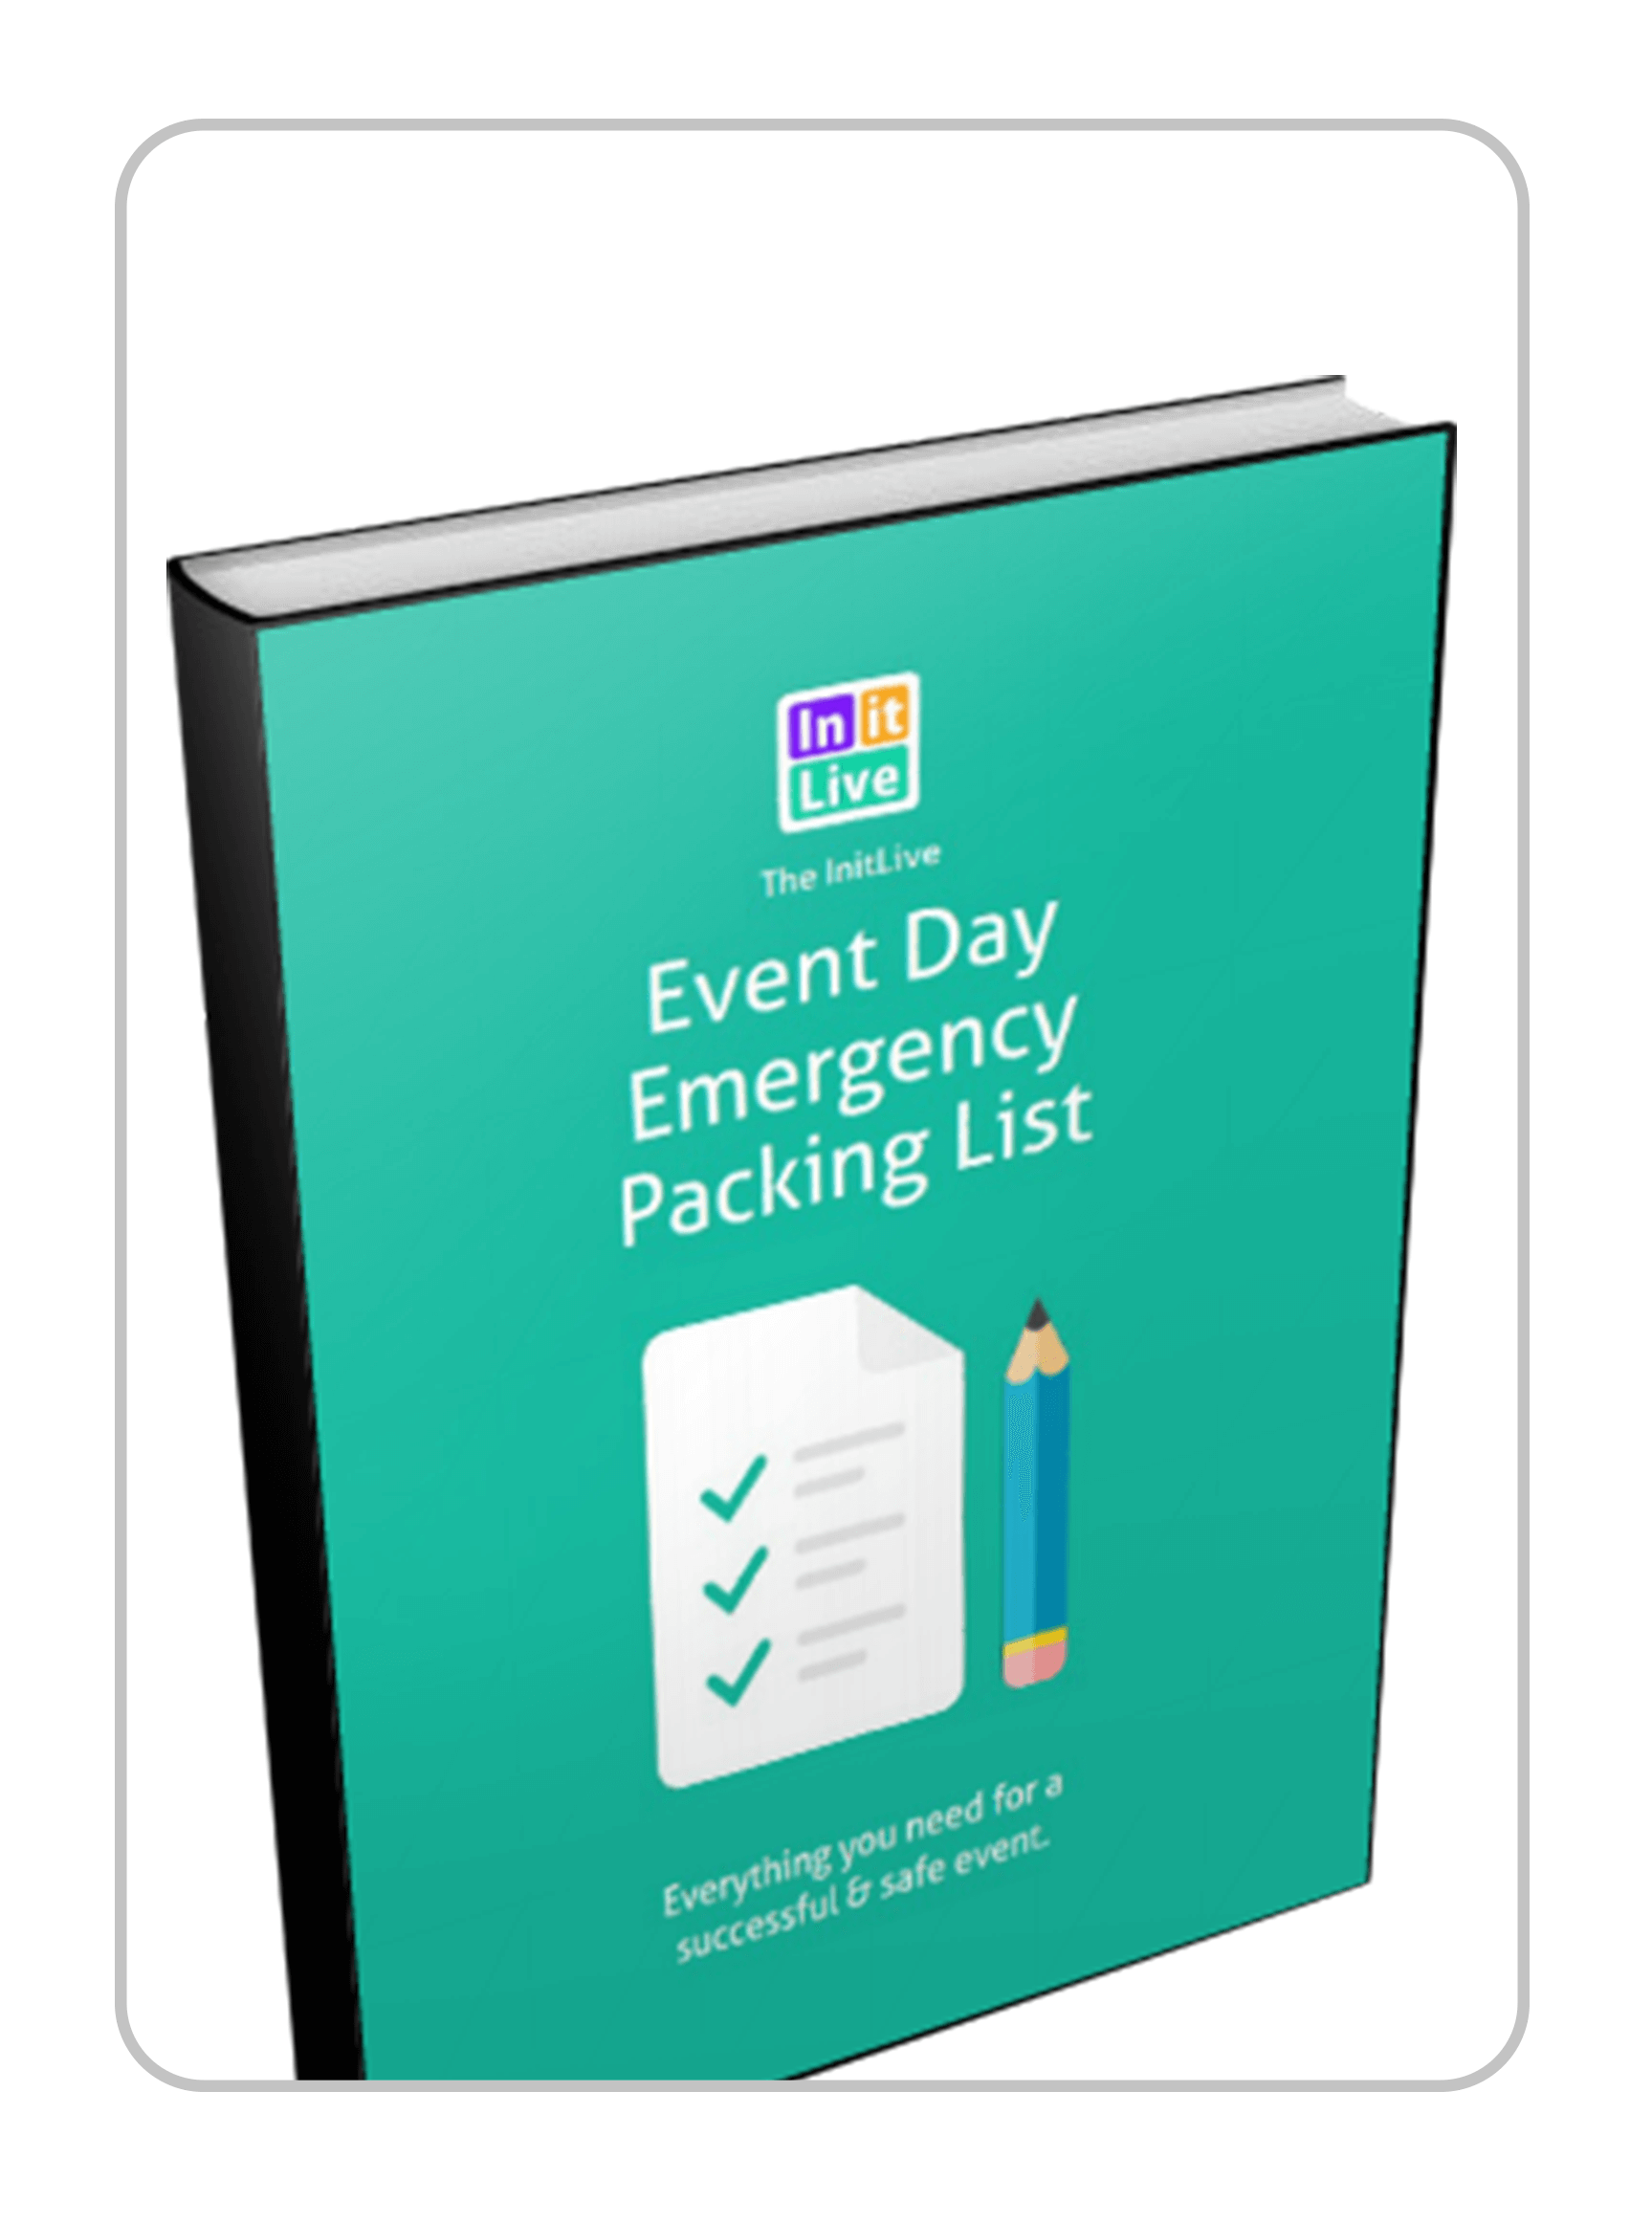 Event Day Emergency Packing List